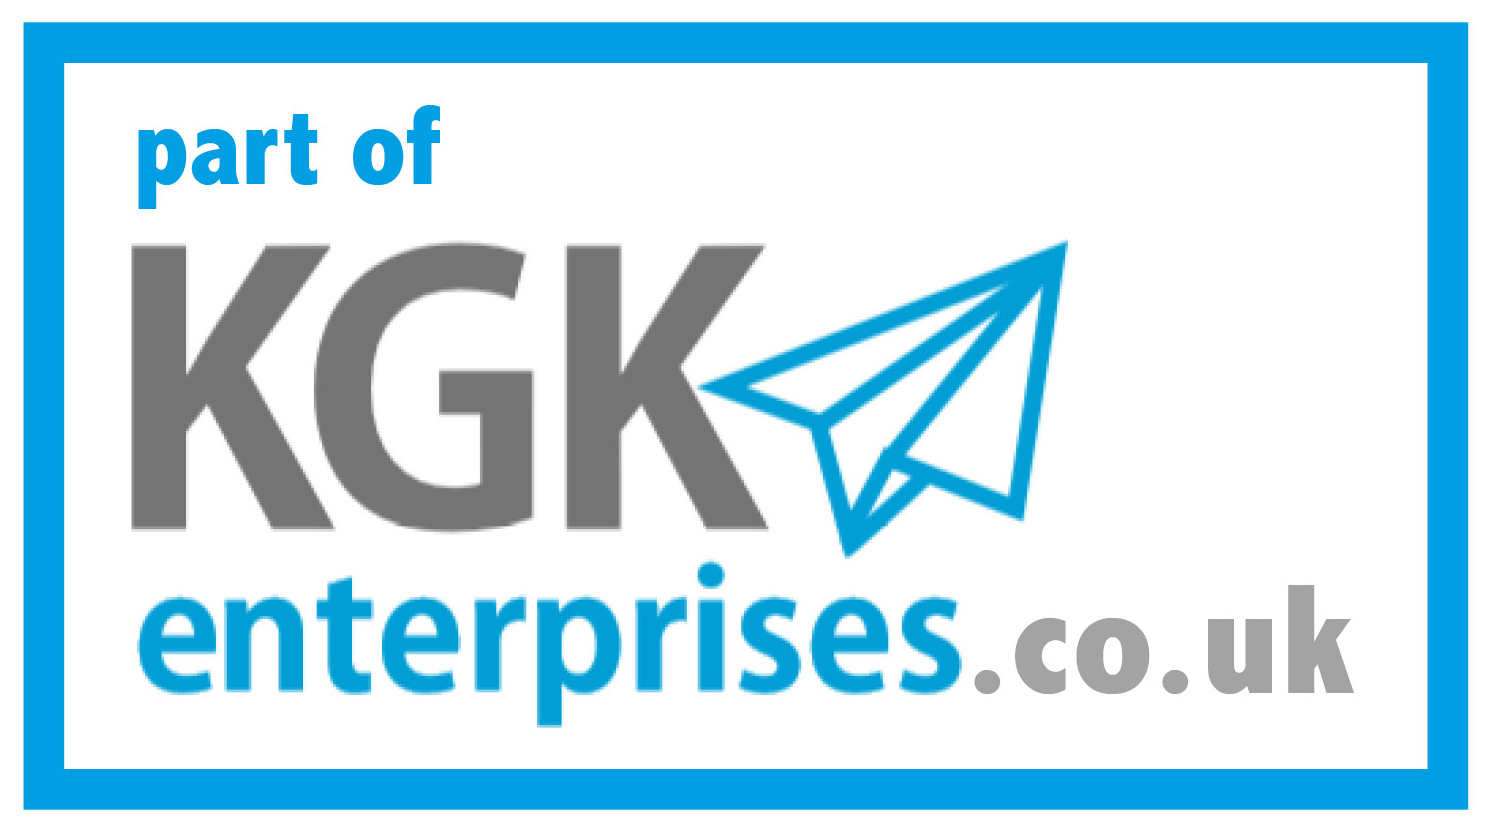 Part of KGK Enterprises